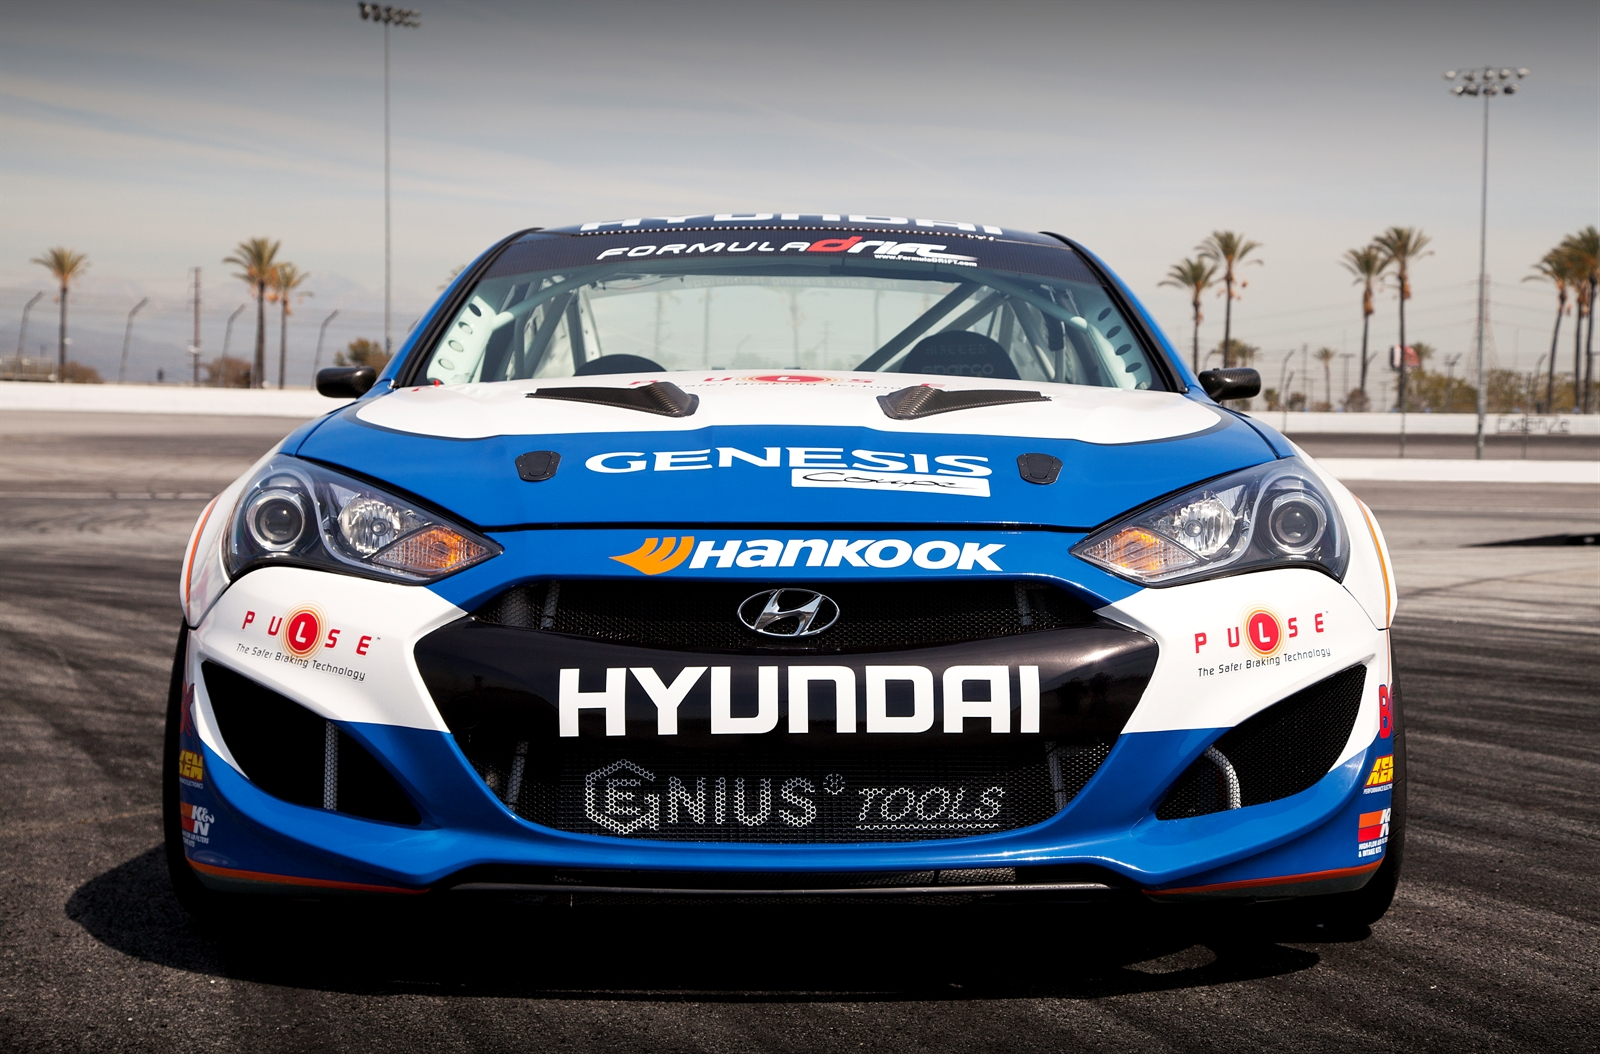 2013 Hyundai Genesis Coupe Formula Drift Car Autoevolution